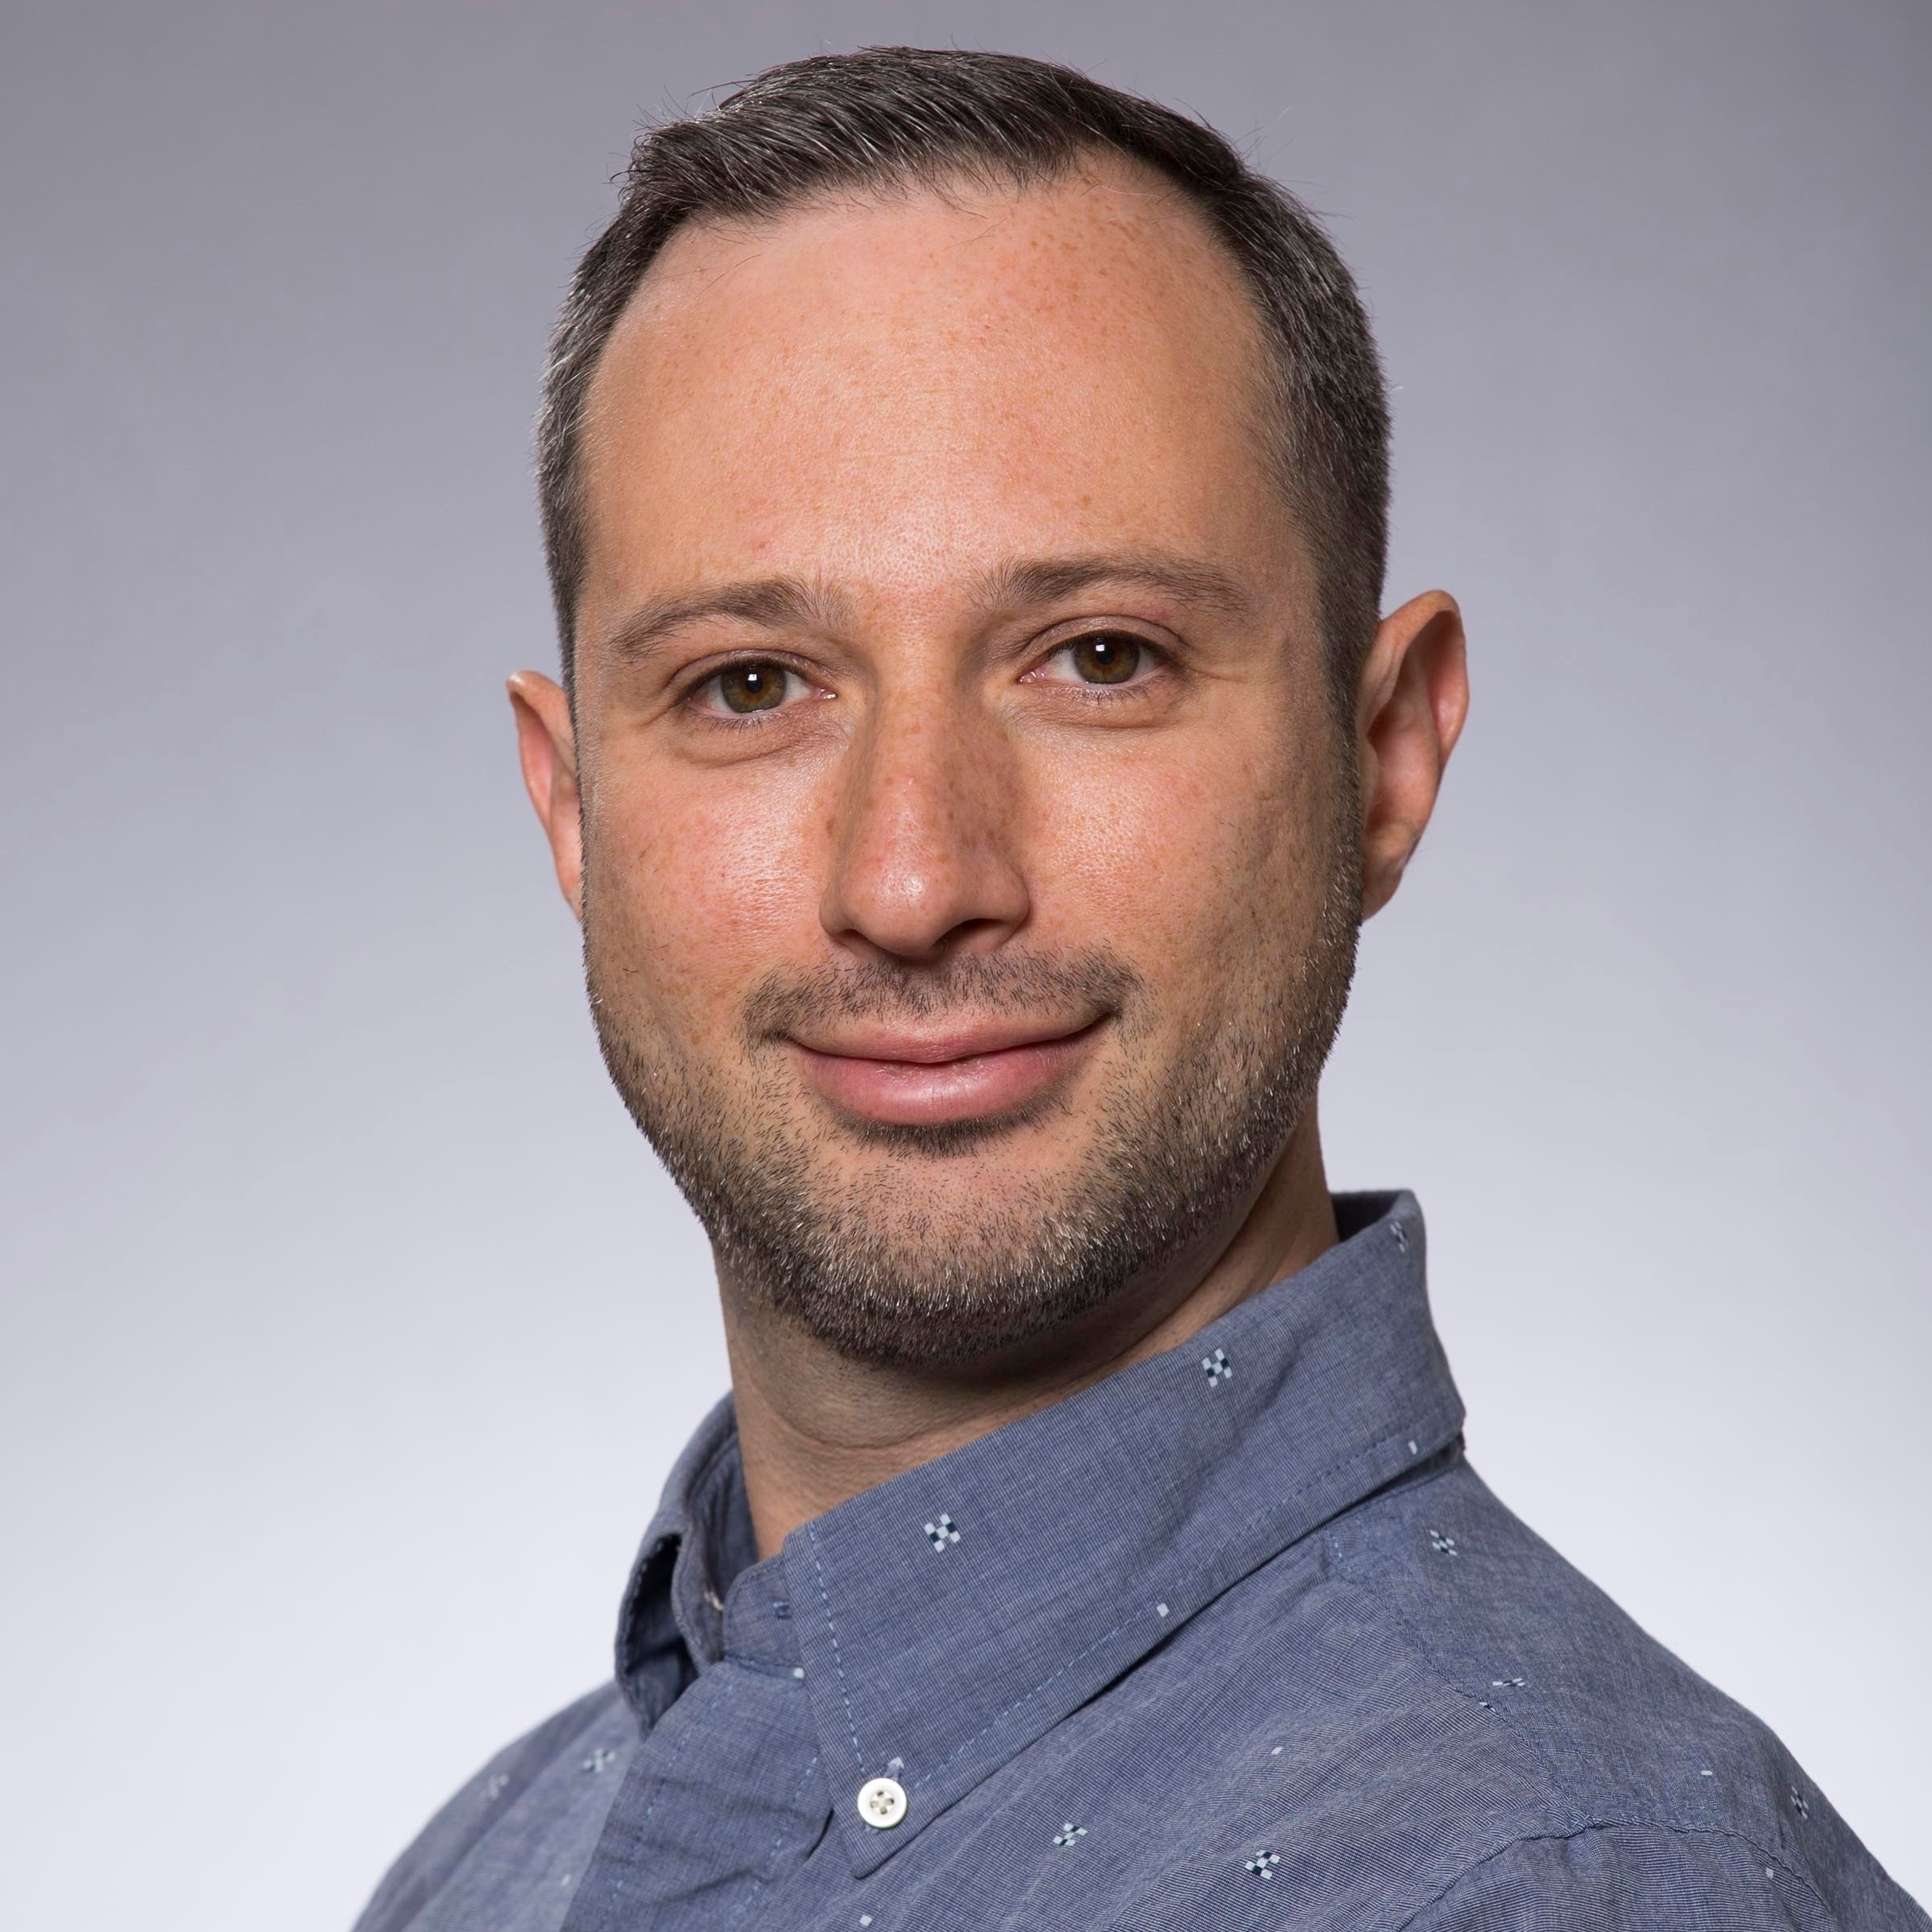 engineering director / advisor - Oleg RocklinEngineer and entrepreneur. Specializes in mission critical applications: AI for Industrial IoT, high-frequency trading, realtime data processing.